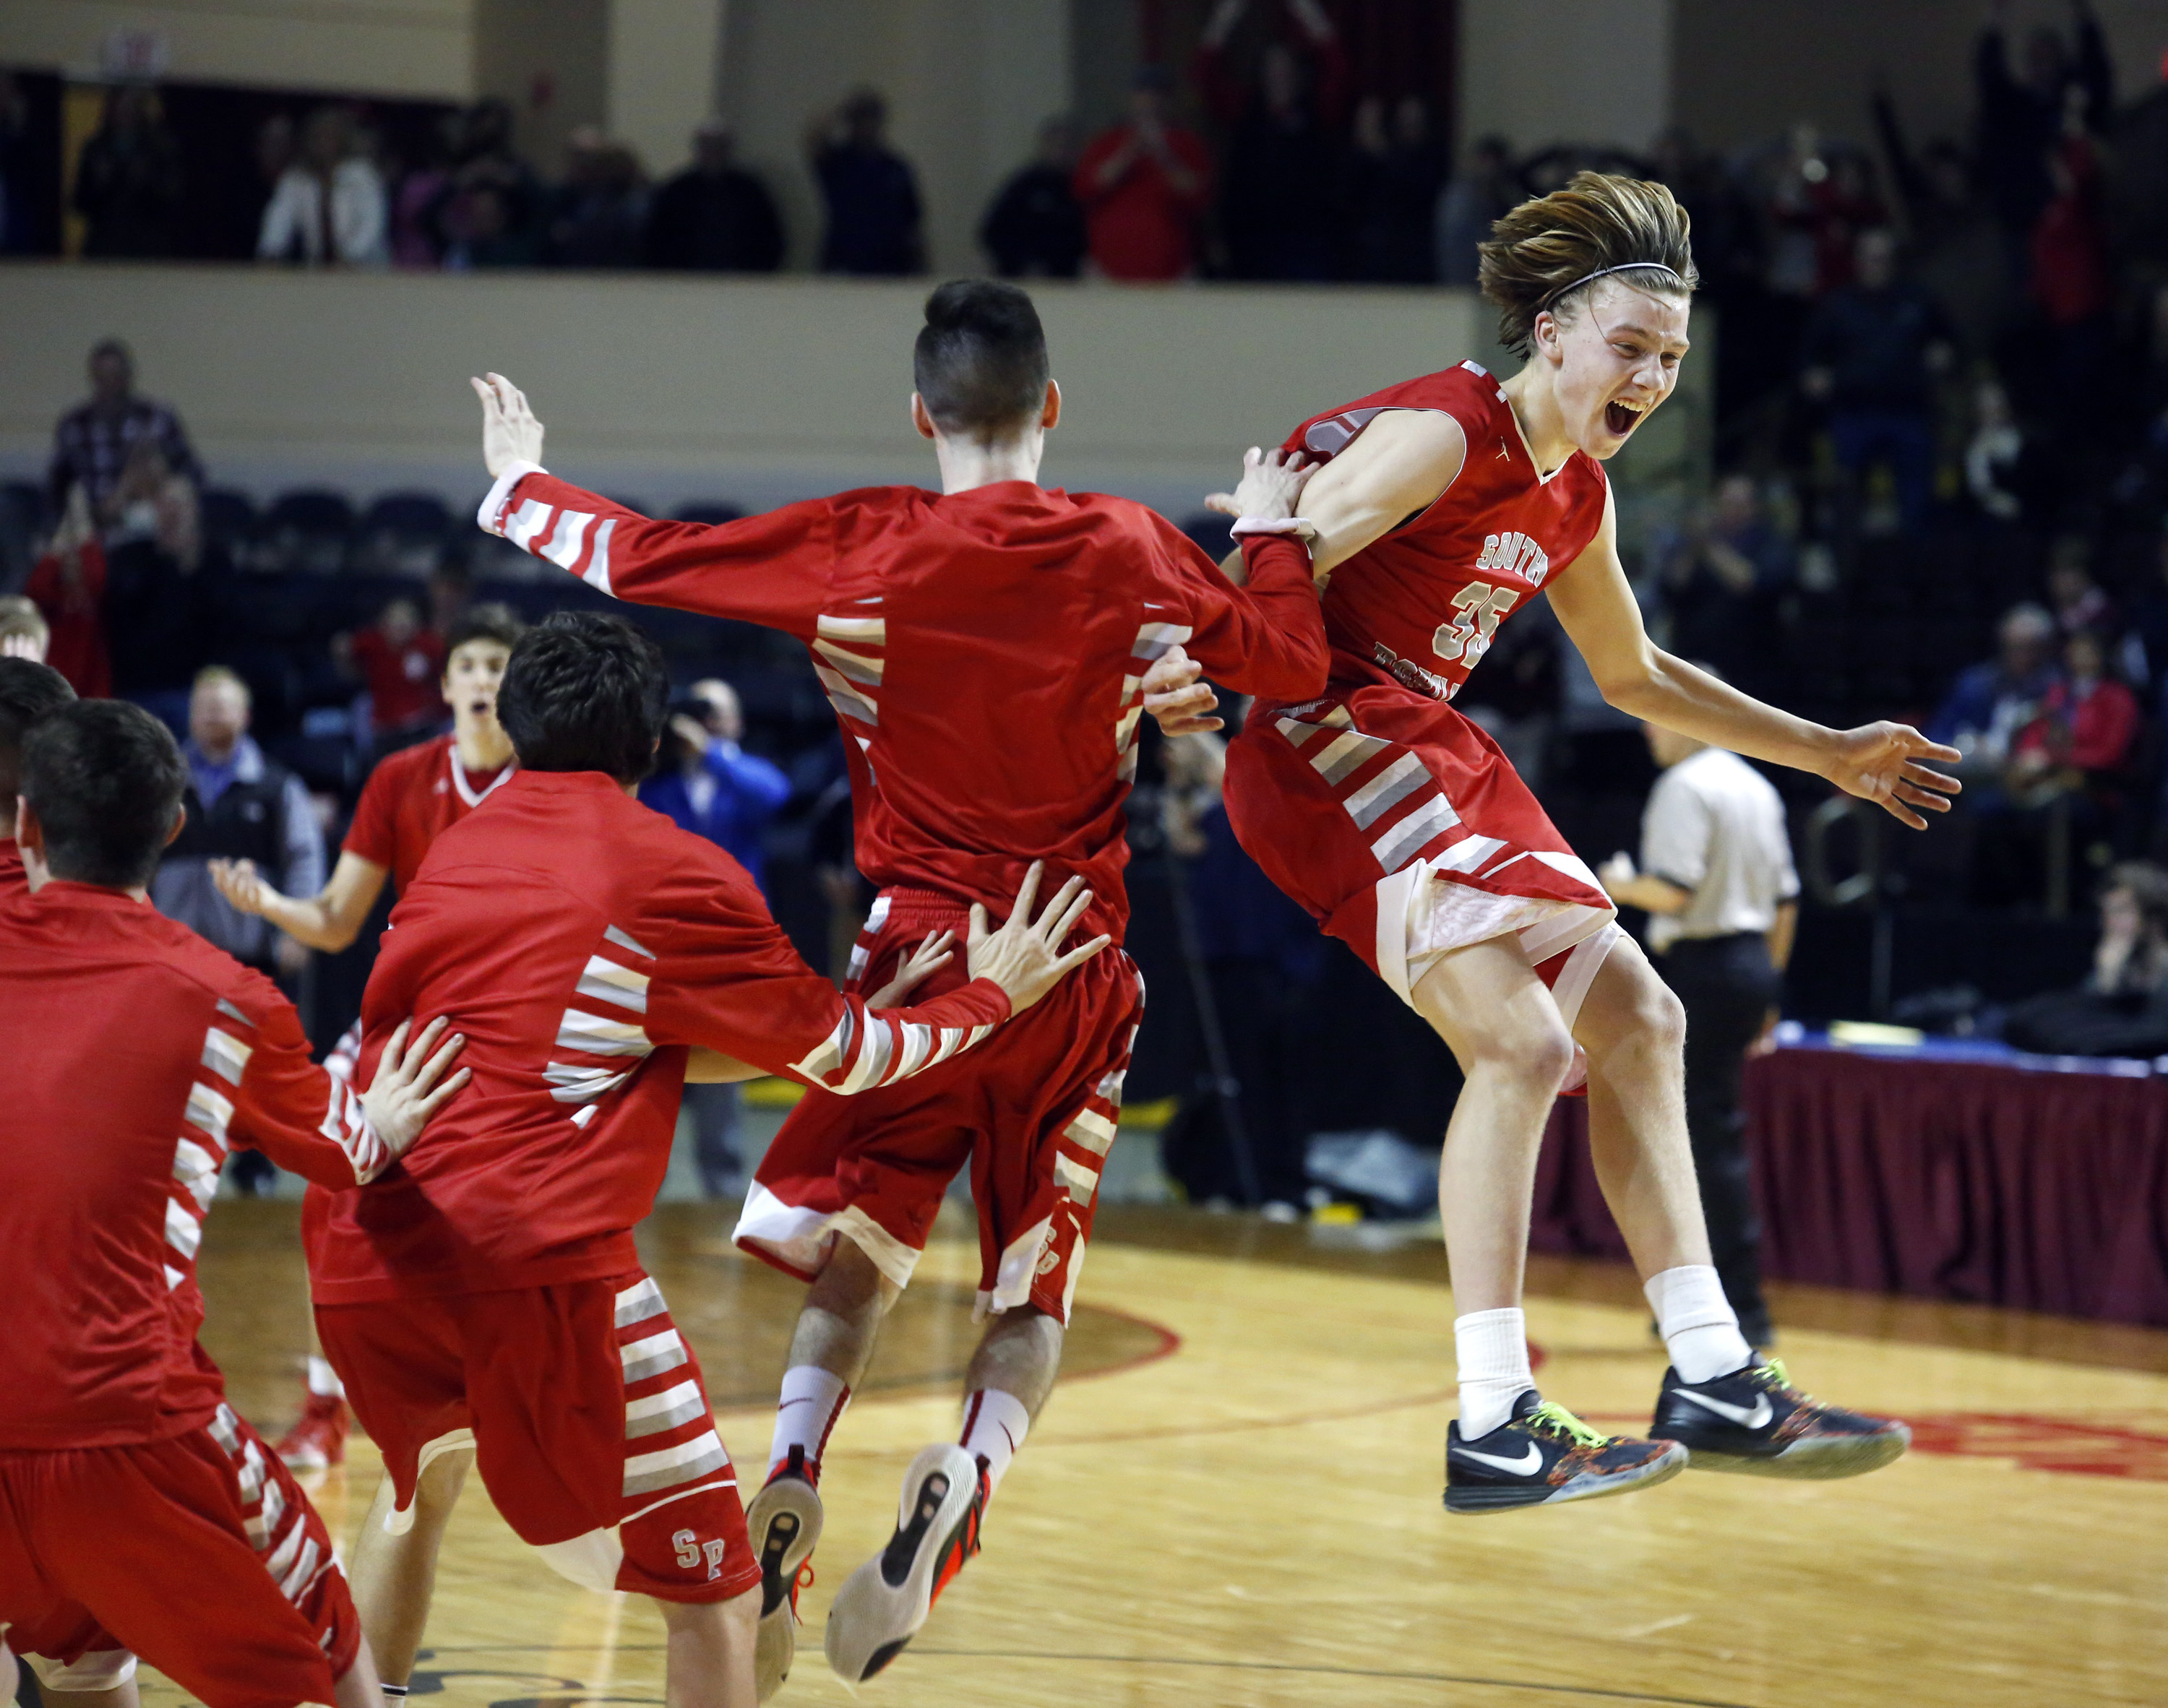 Riley Hasson of South Portland celebrates with teammates after defeating Massabesic in the Class AA South final Friday night at the Cross Insurance Arena. Derek Davis/Staff Photographer